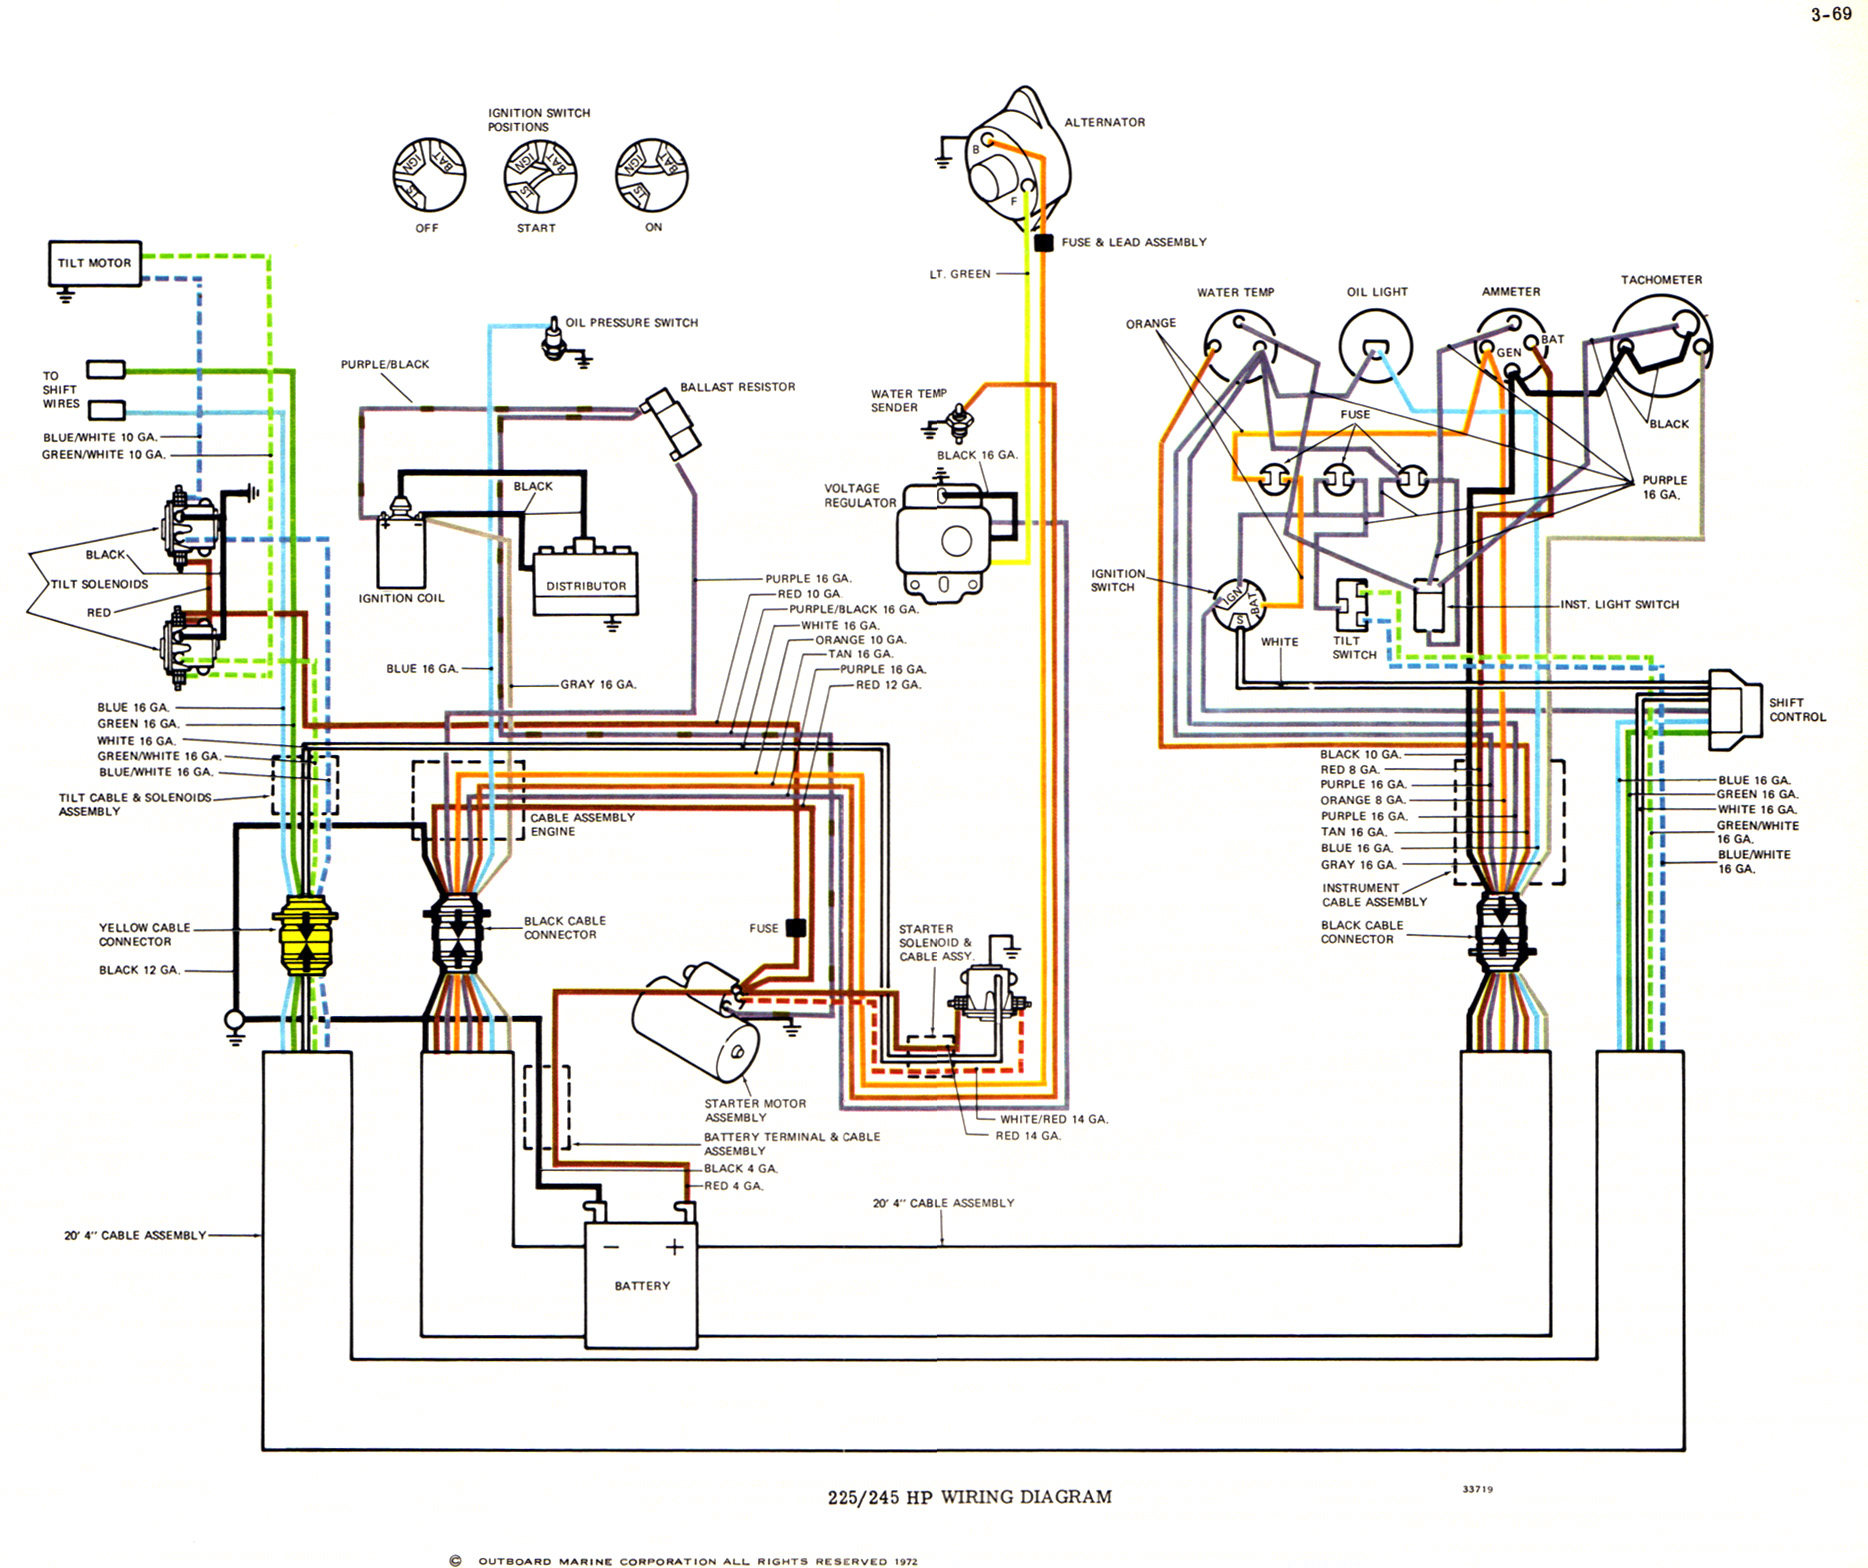 73_OMC_V8_all_big omc wiring diagram basic boat wiring schematic \u2022 wiring diagrams mercruiser wiring schematic at mifinder.co